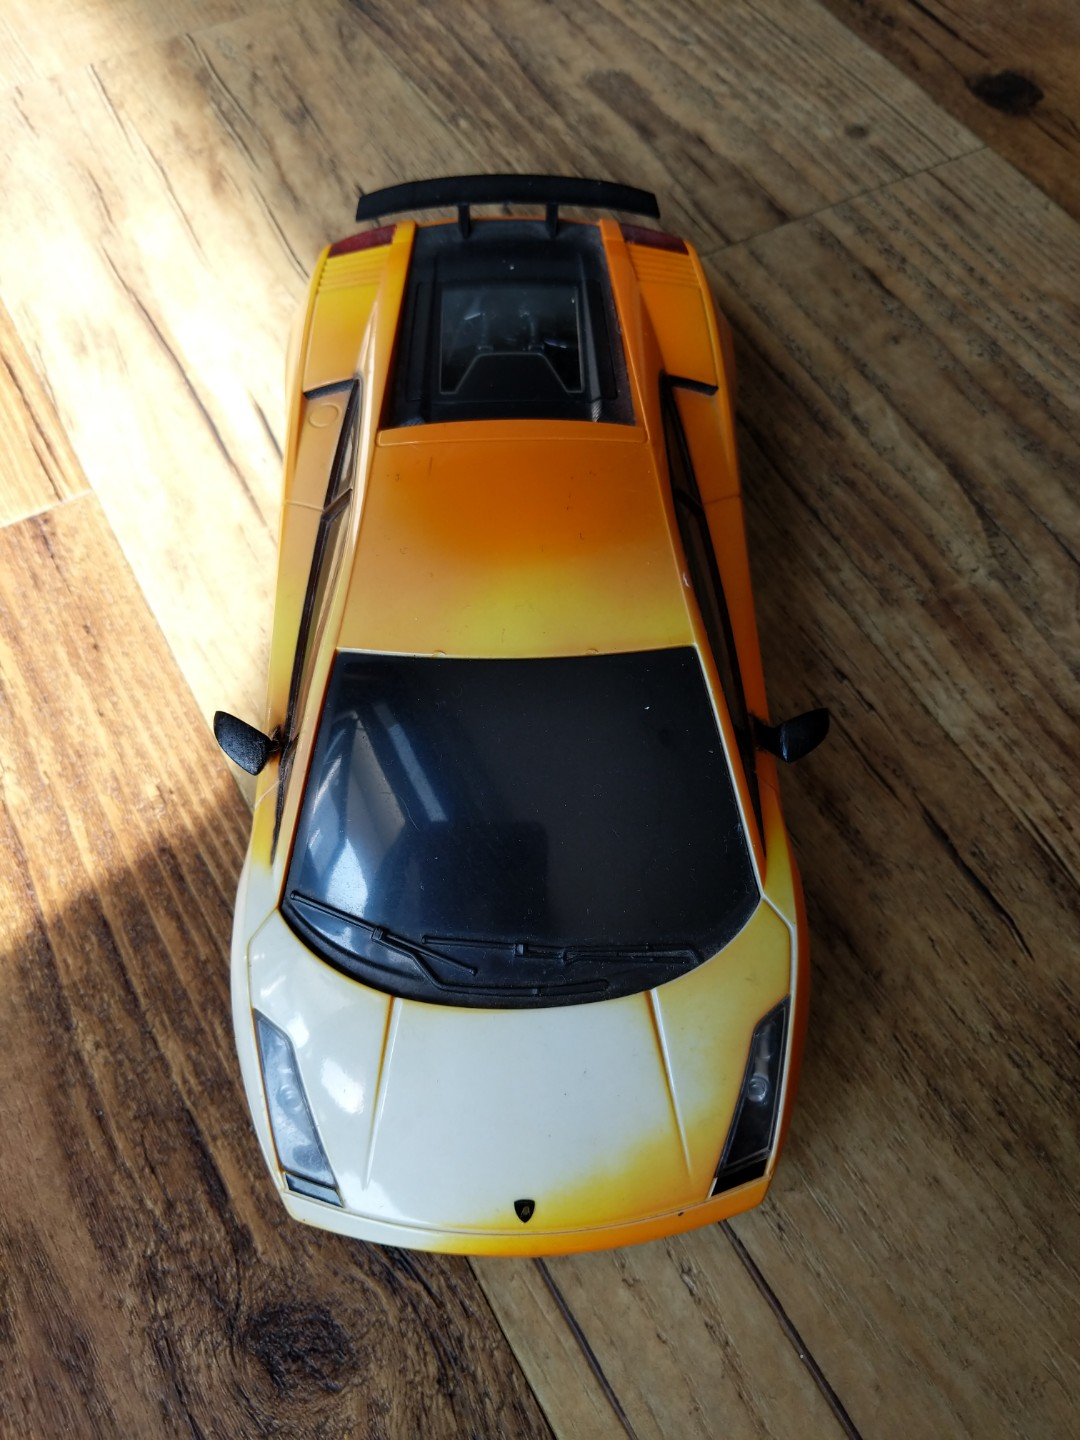 Lamborghini Car Model Toys Games Others On Carousell